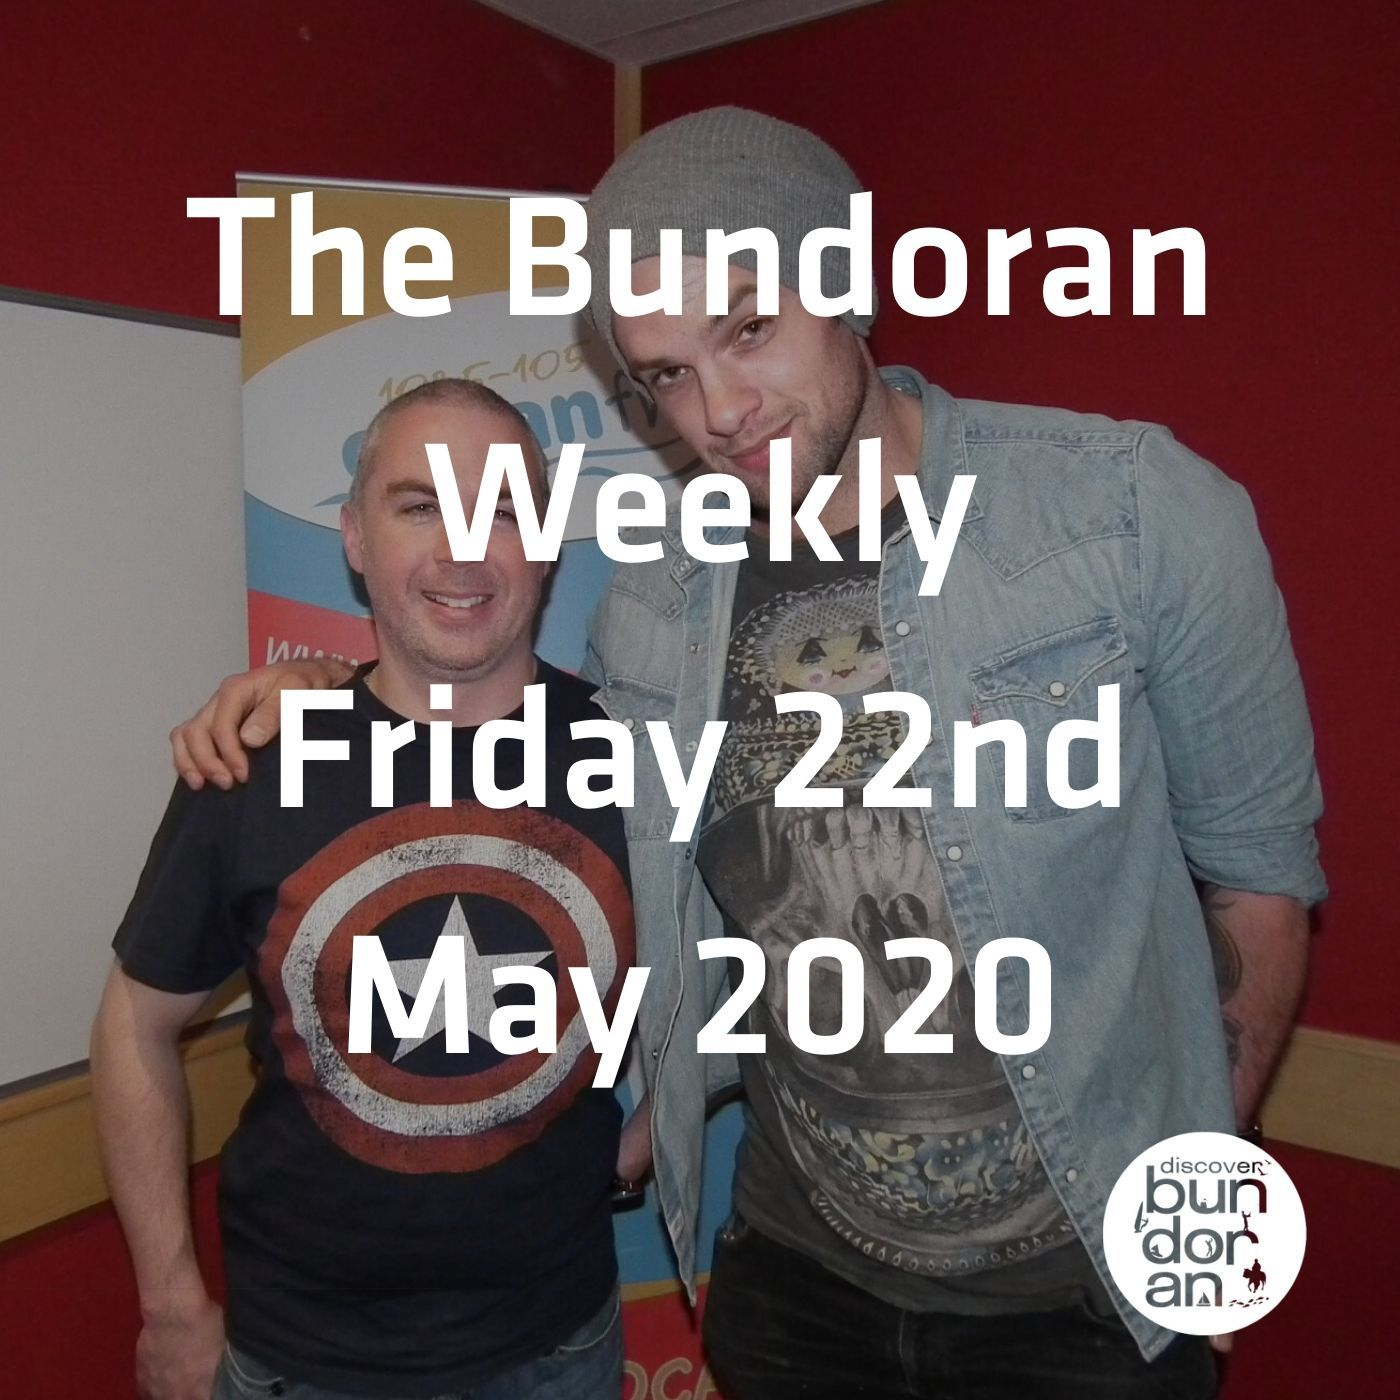 092 - The Bundoran Weekly - Friday 22nd May 2020